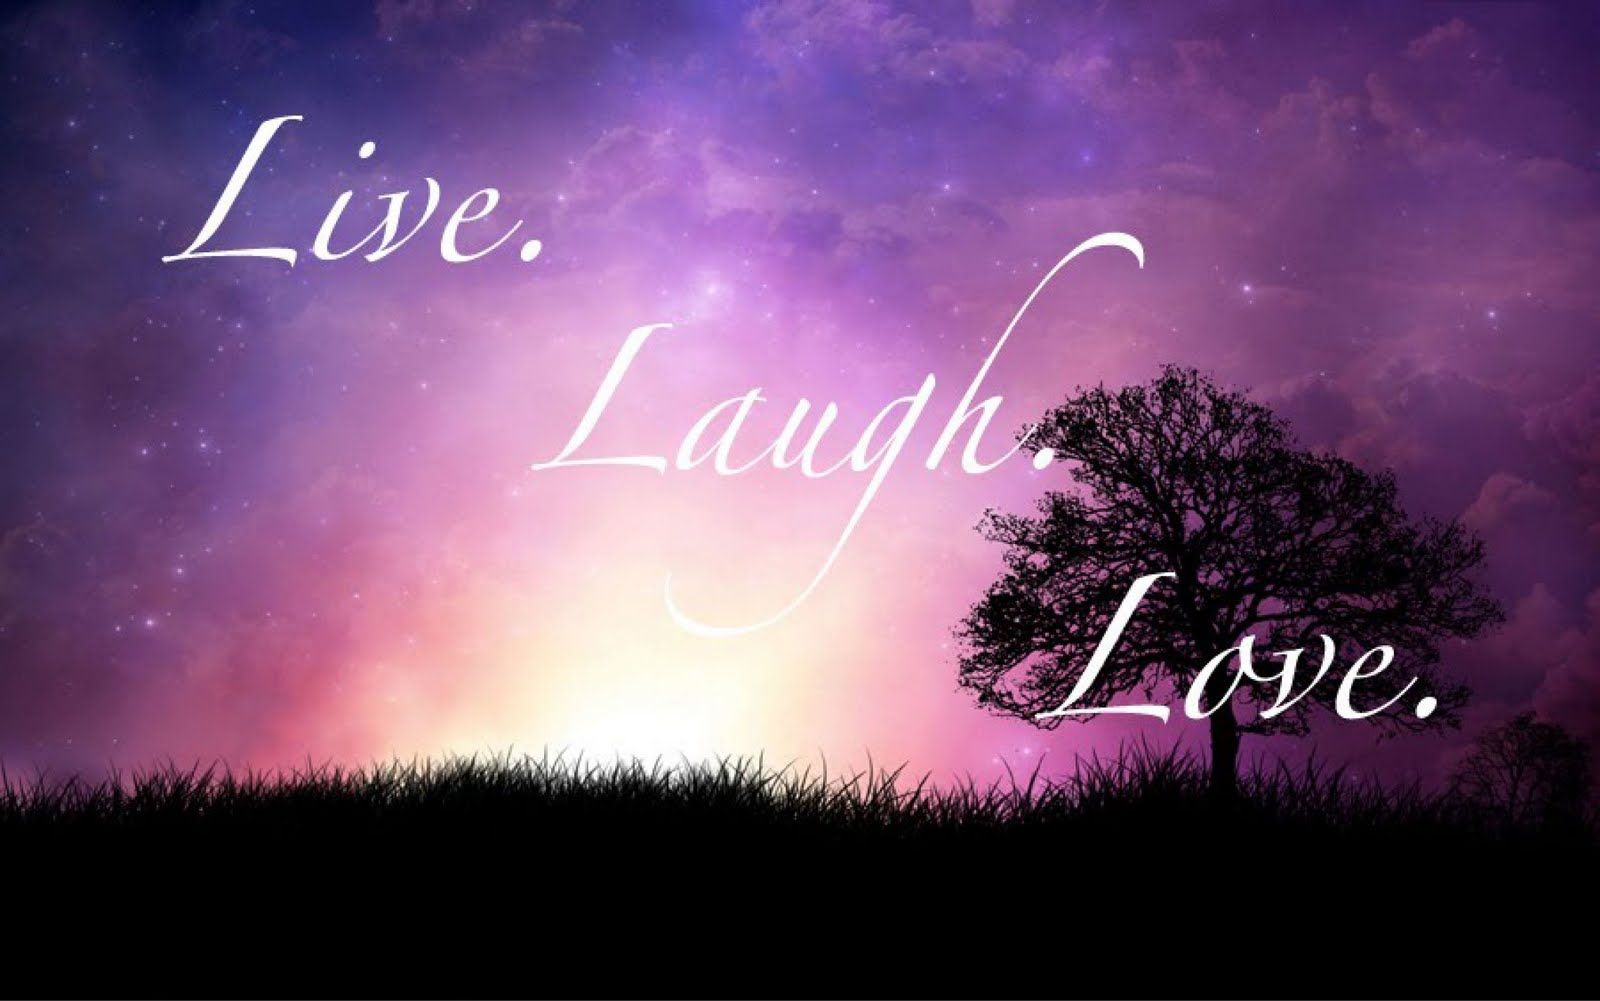 Live Laugh Love Iphone Wallpaper : live love laugh Live Love Laugh Pinterest Inspirational